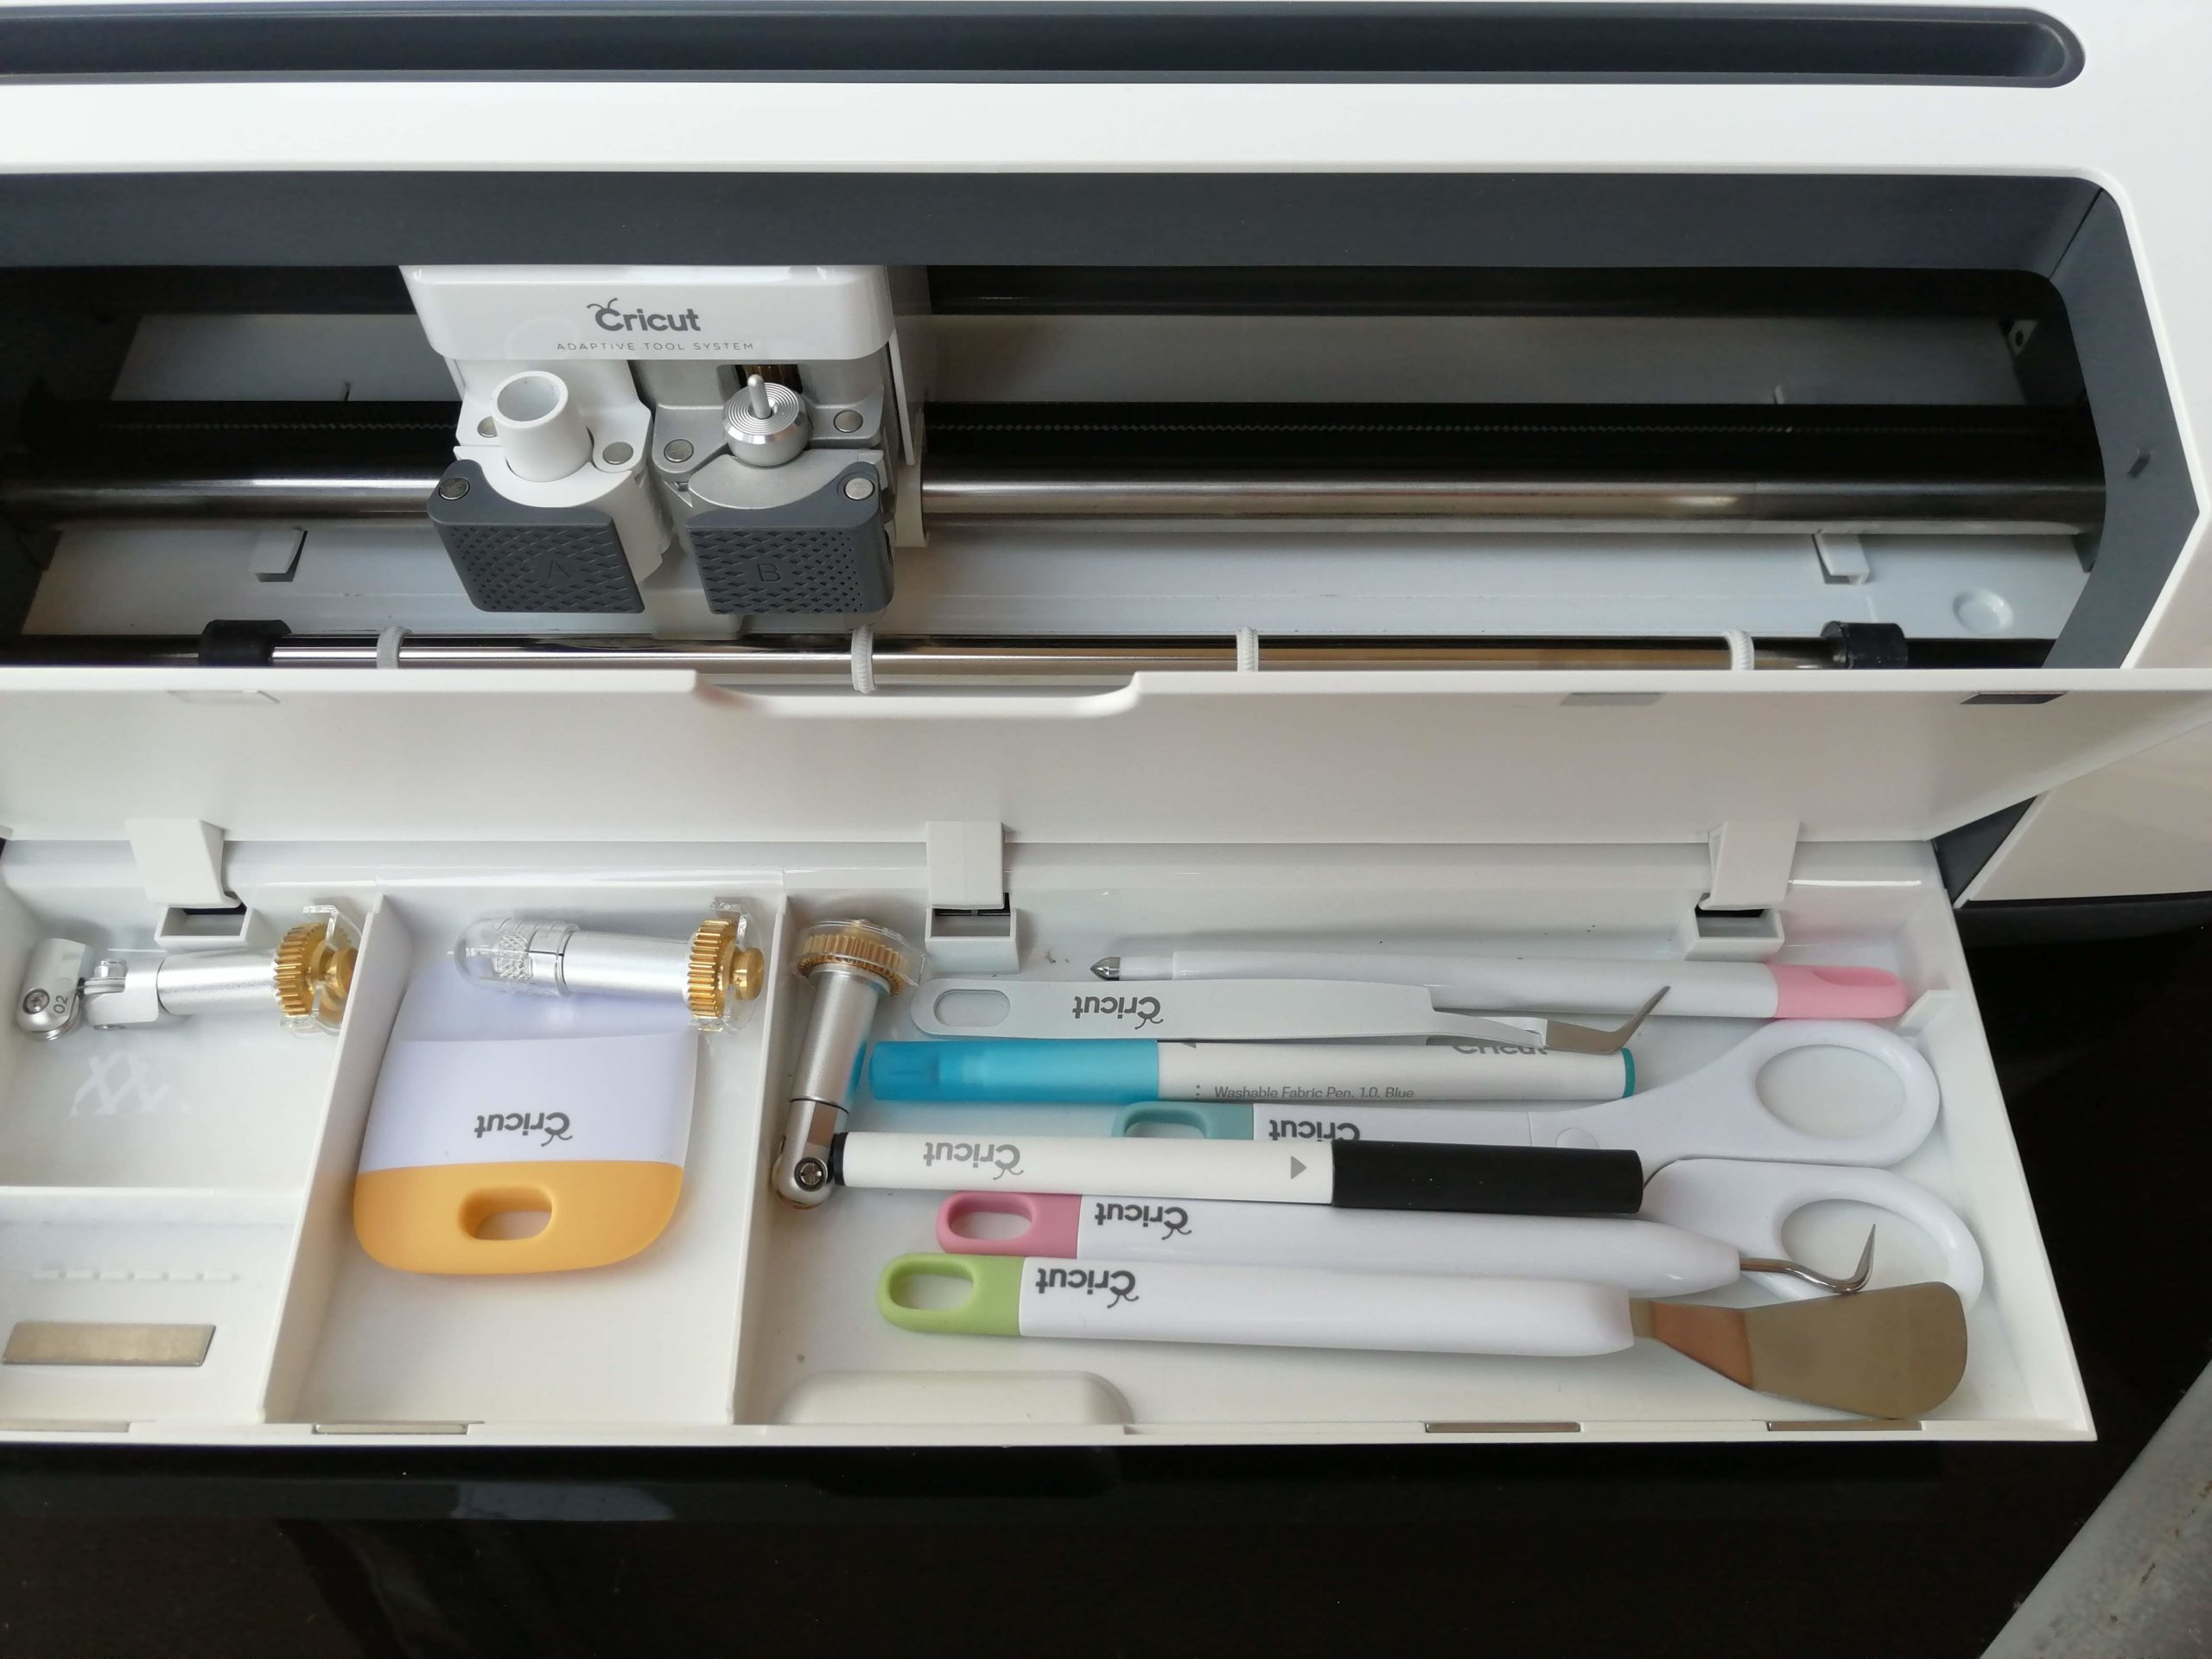 Accessori per Cricut Maker